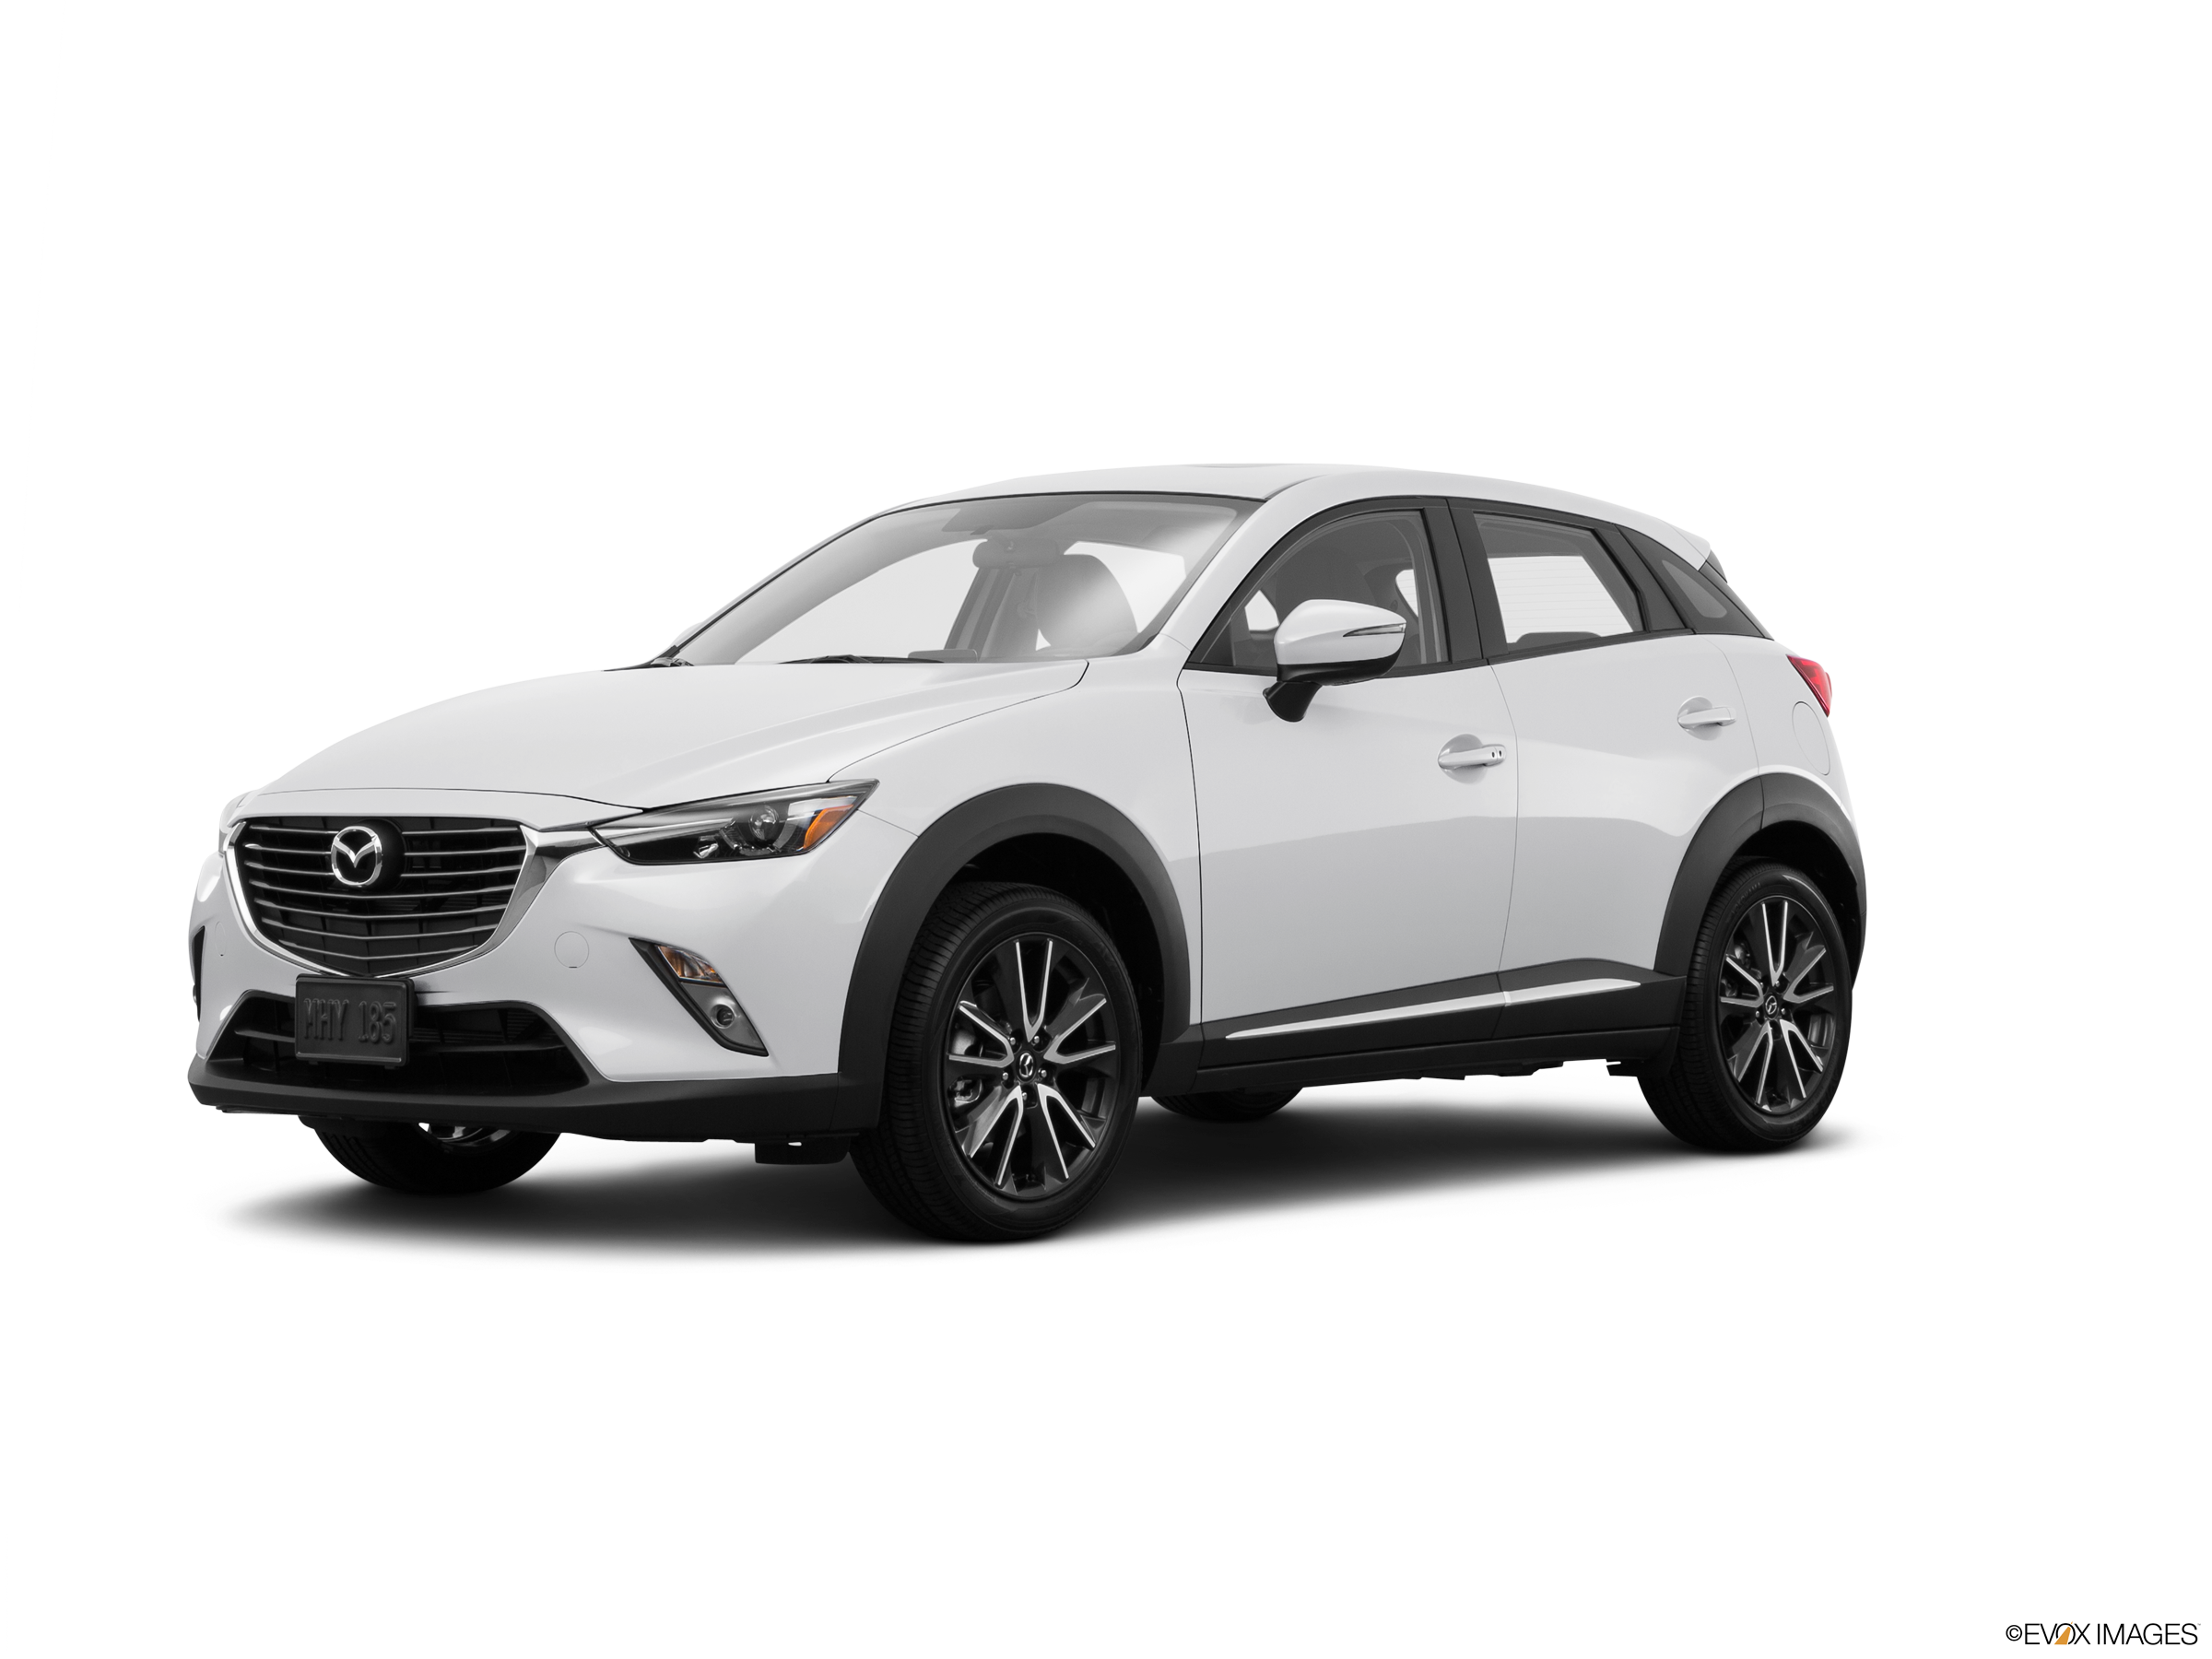 Top Consumer Rated Crossovers of 2017 - 2017 Mazda CX-3